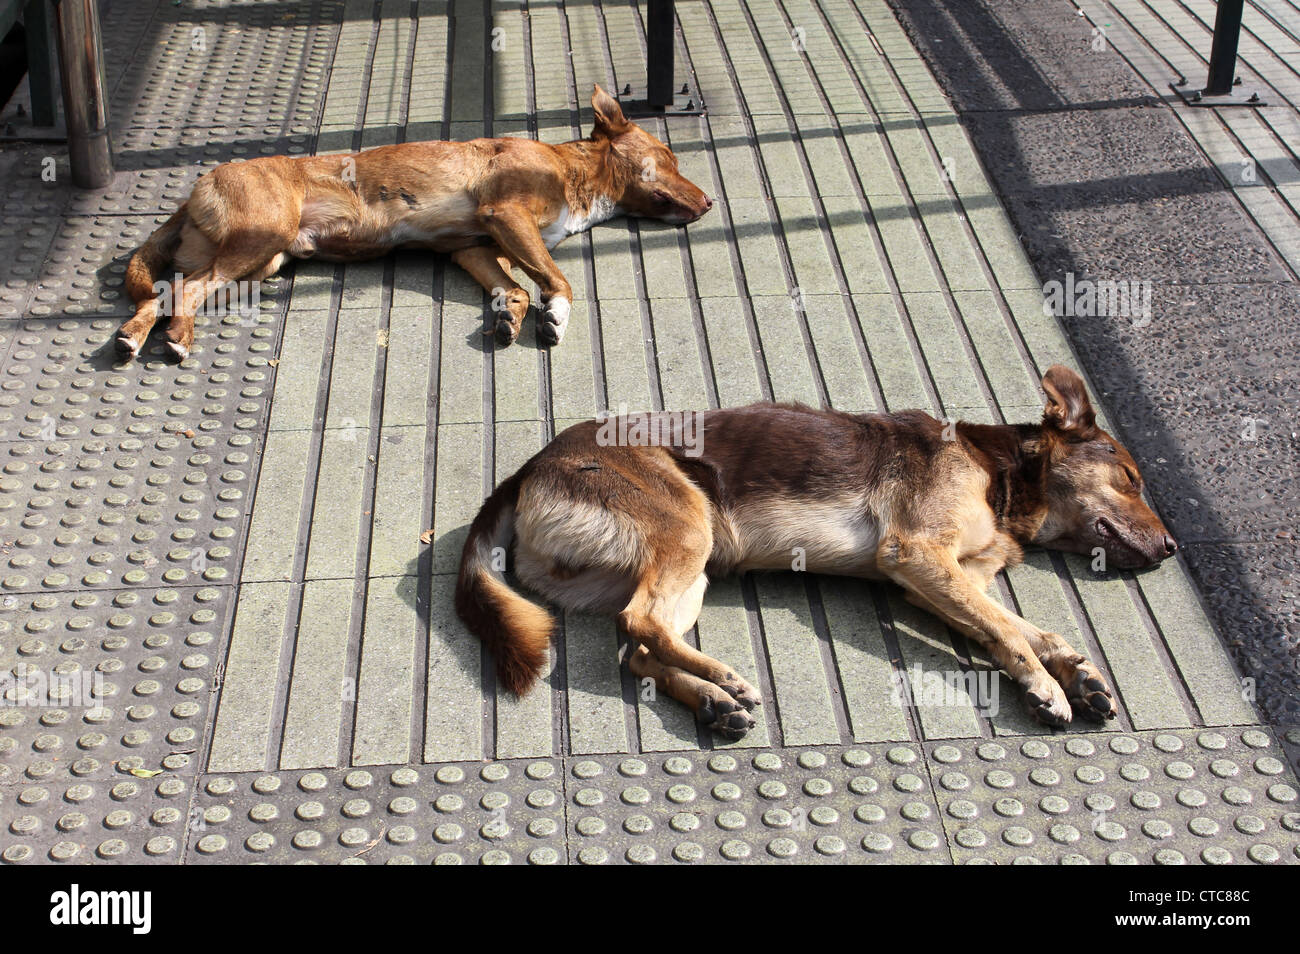 Dogs asleep Stock Photo